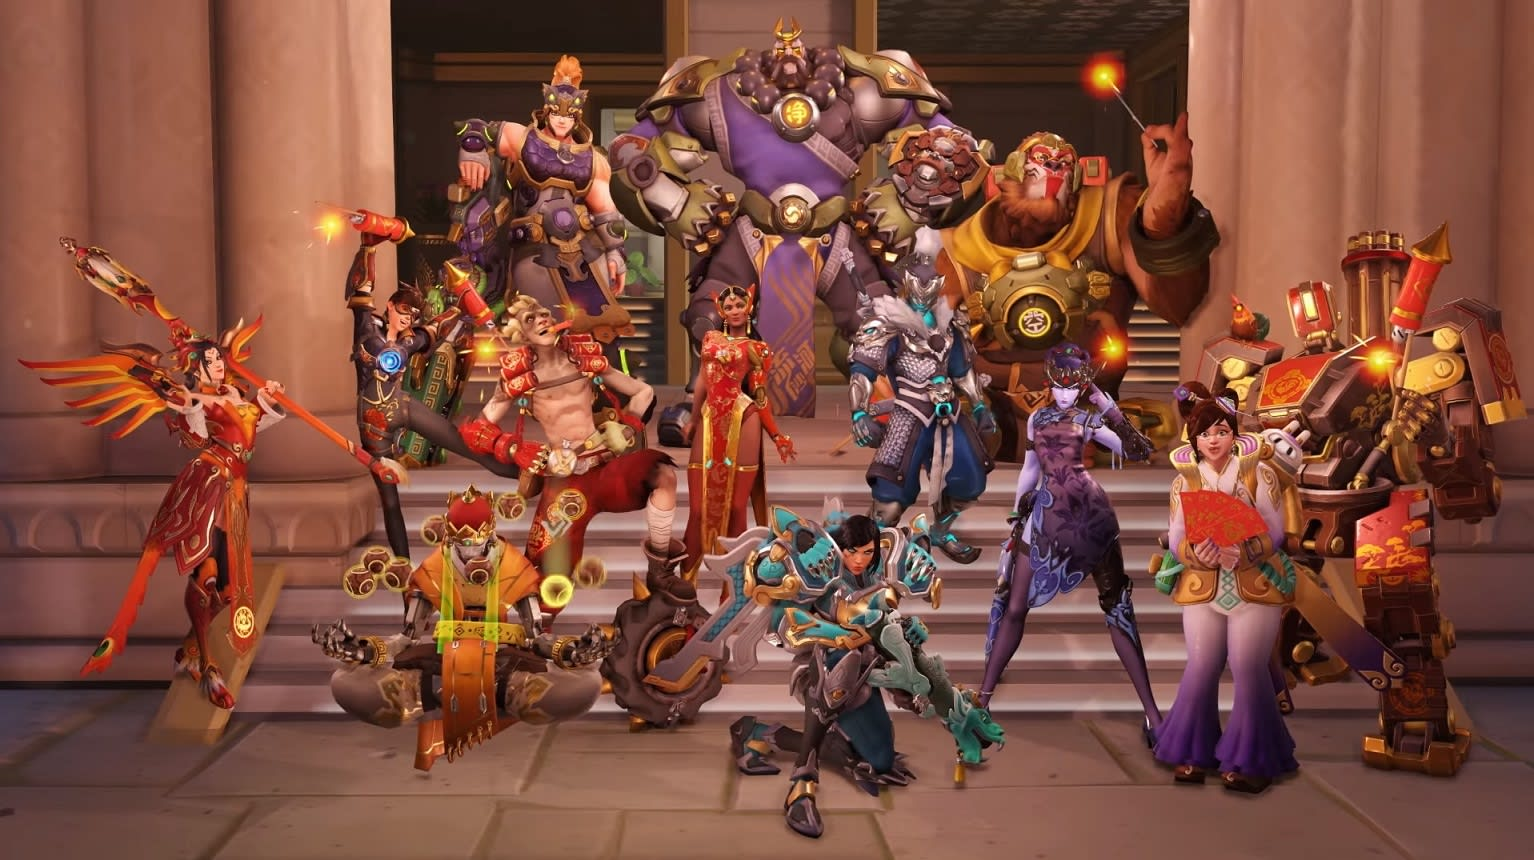 Overwatch's' new Capture The Flag map and competitive mode